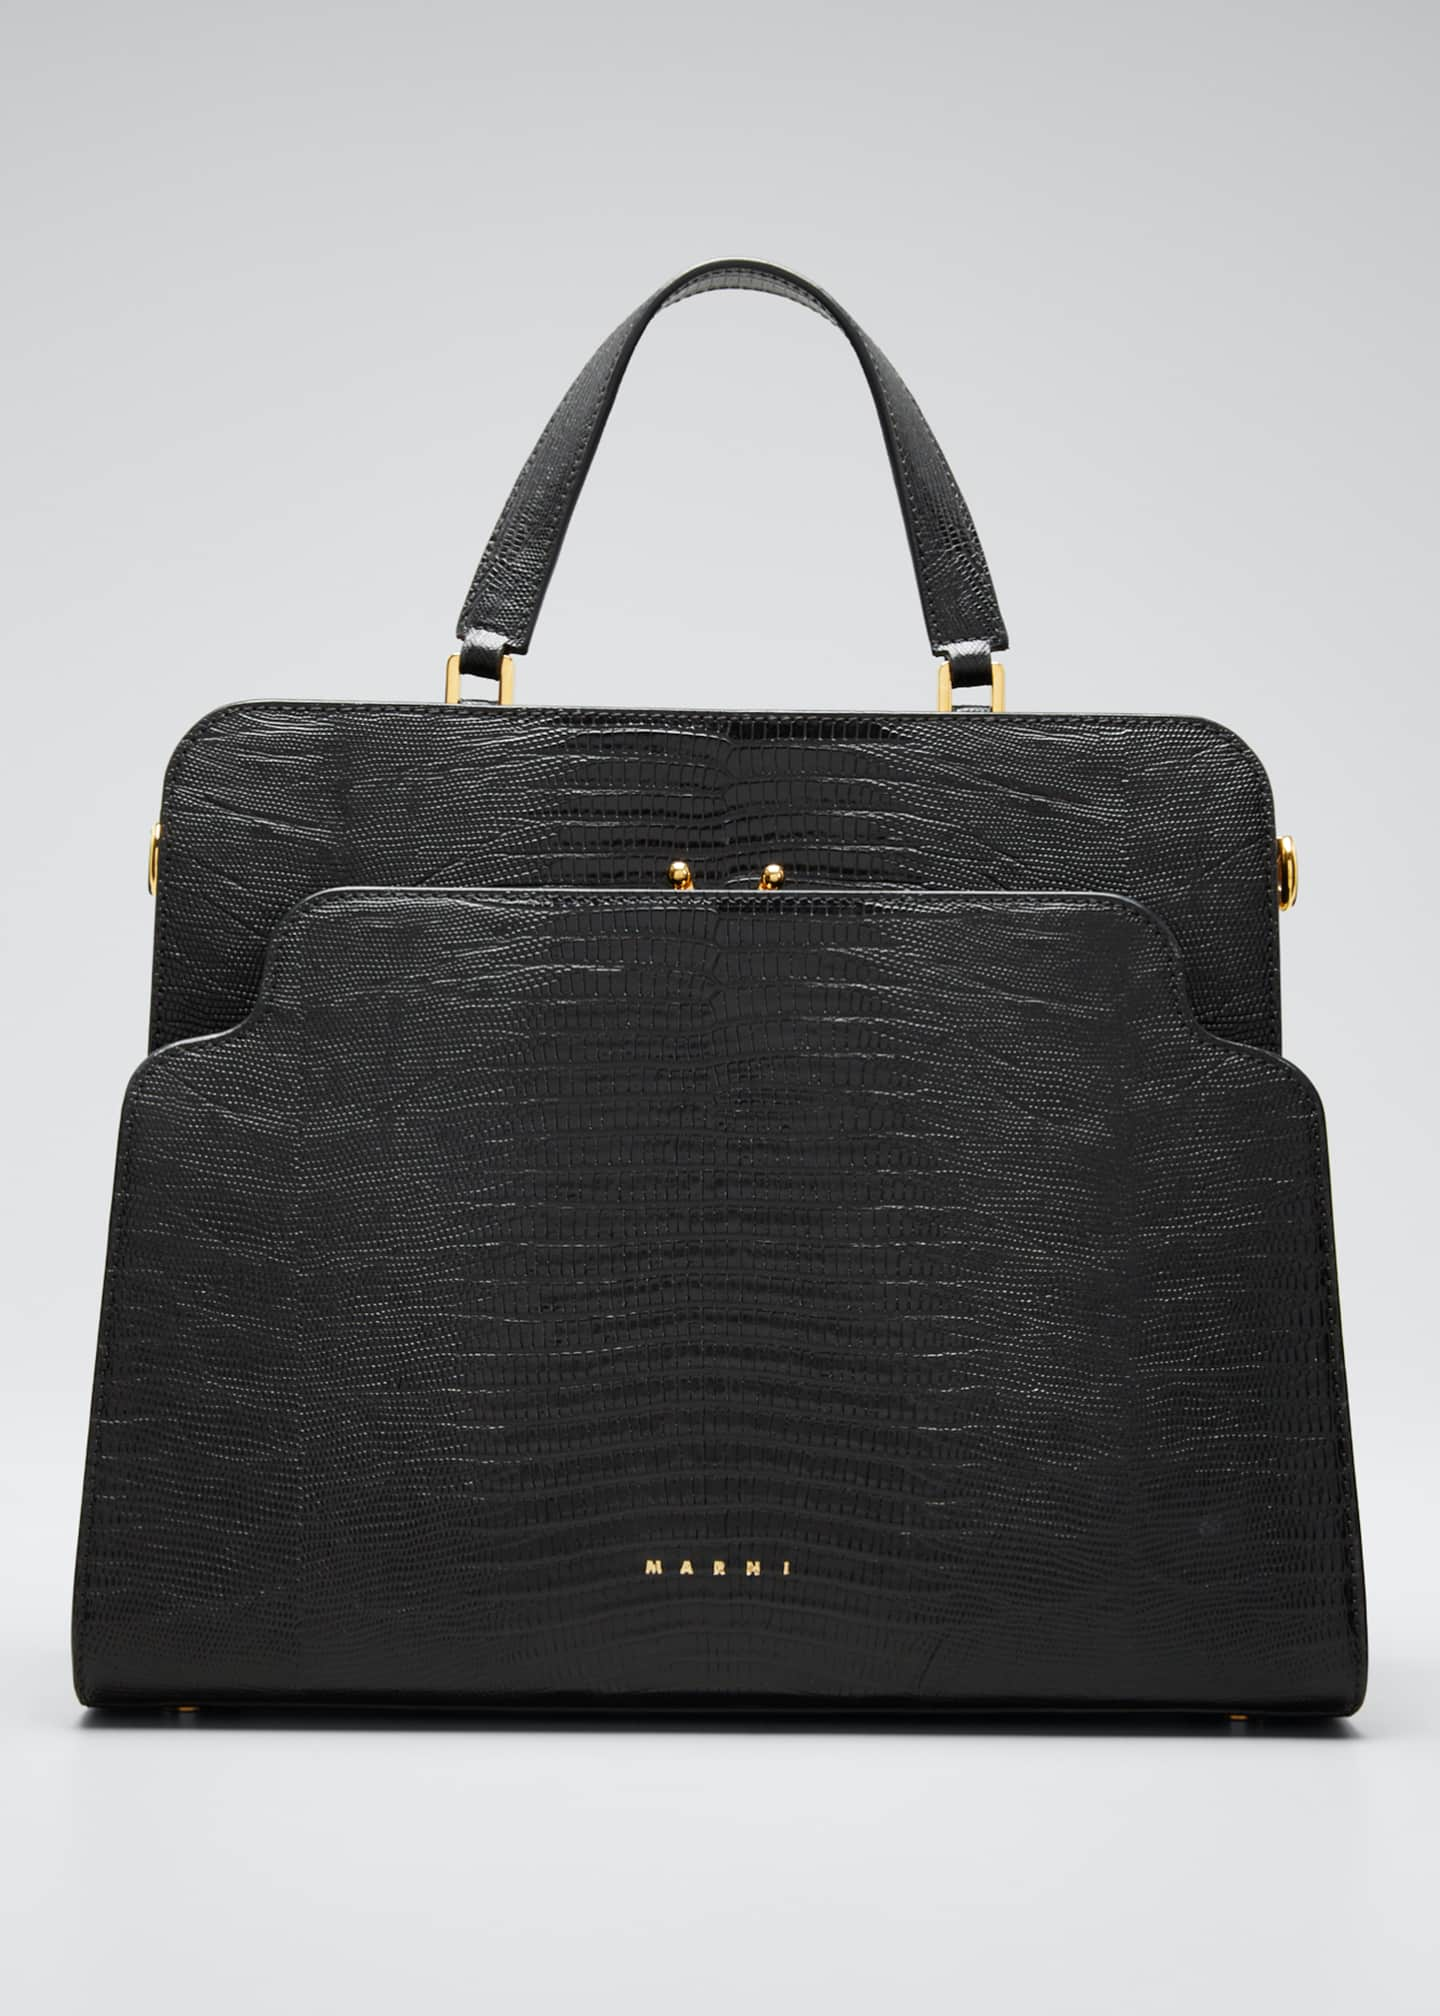 Marni Lizard Stamped Trunk Revers Bag